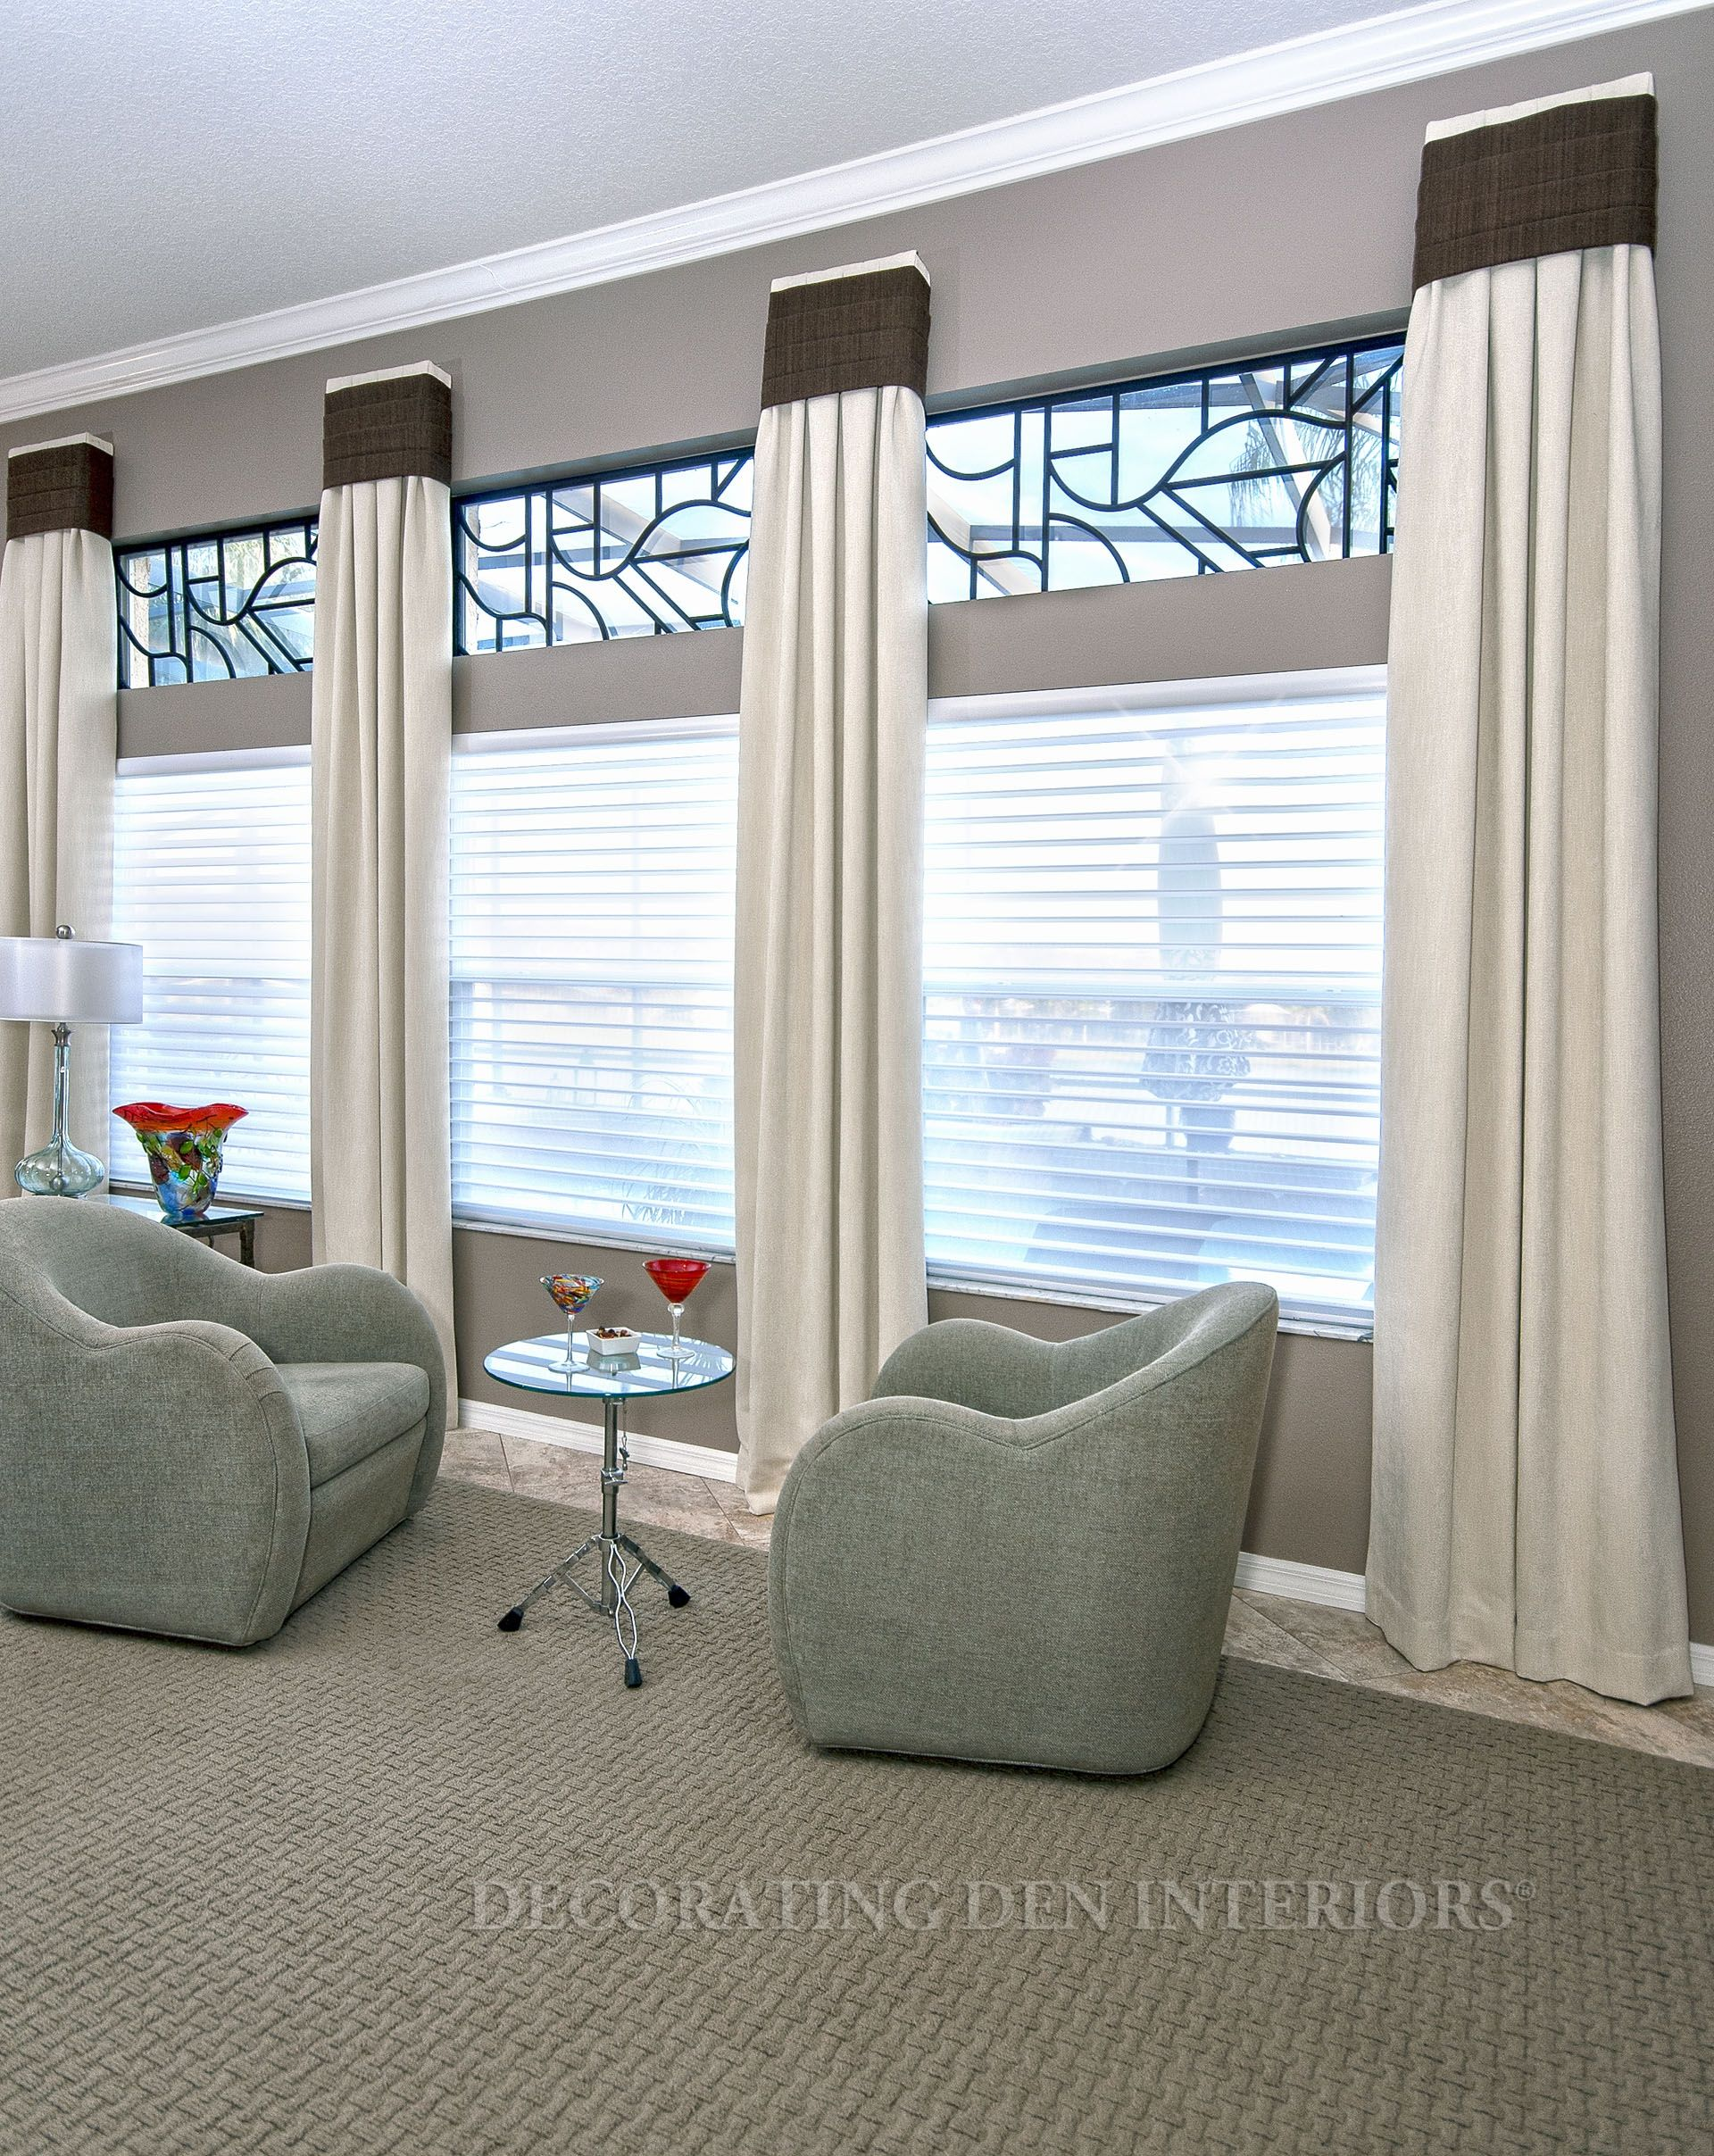 individual window treatments    Designer curtains, blinds and blinds YJAFXRP